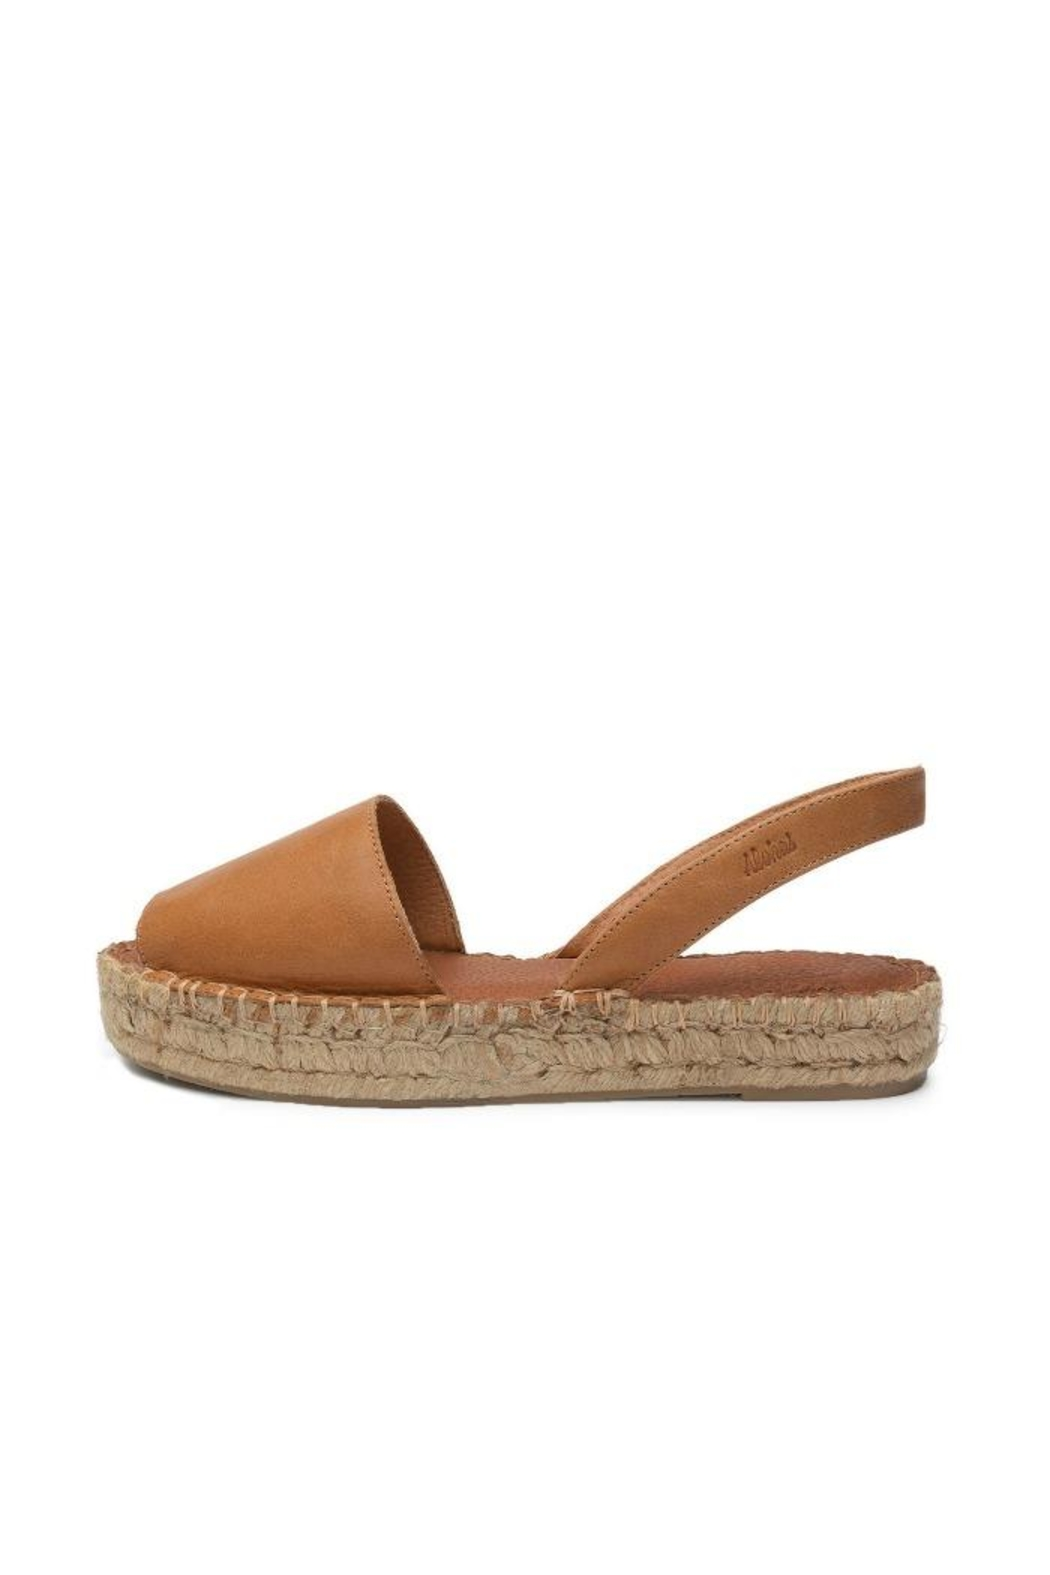 a2c077a941c5 Alohas Ibiza Platform Sandal from Canada by Era Style Loft — Shoptiques